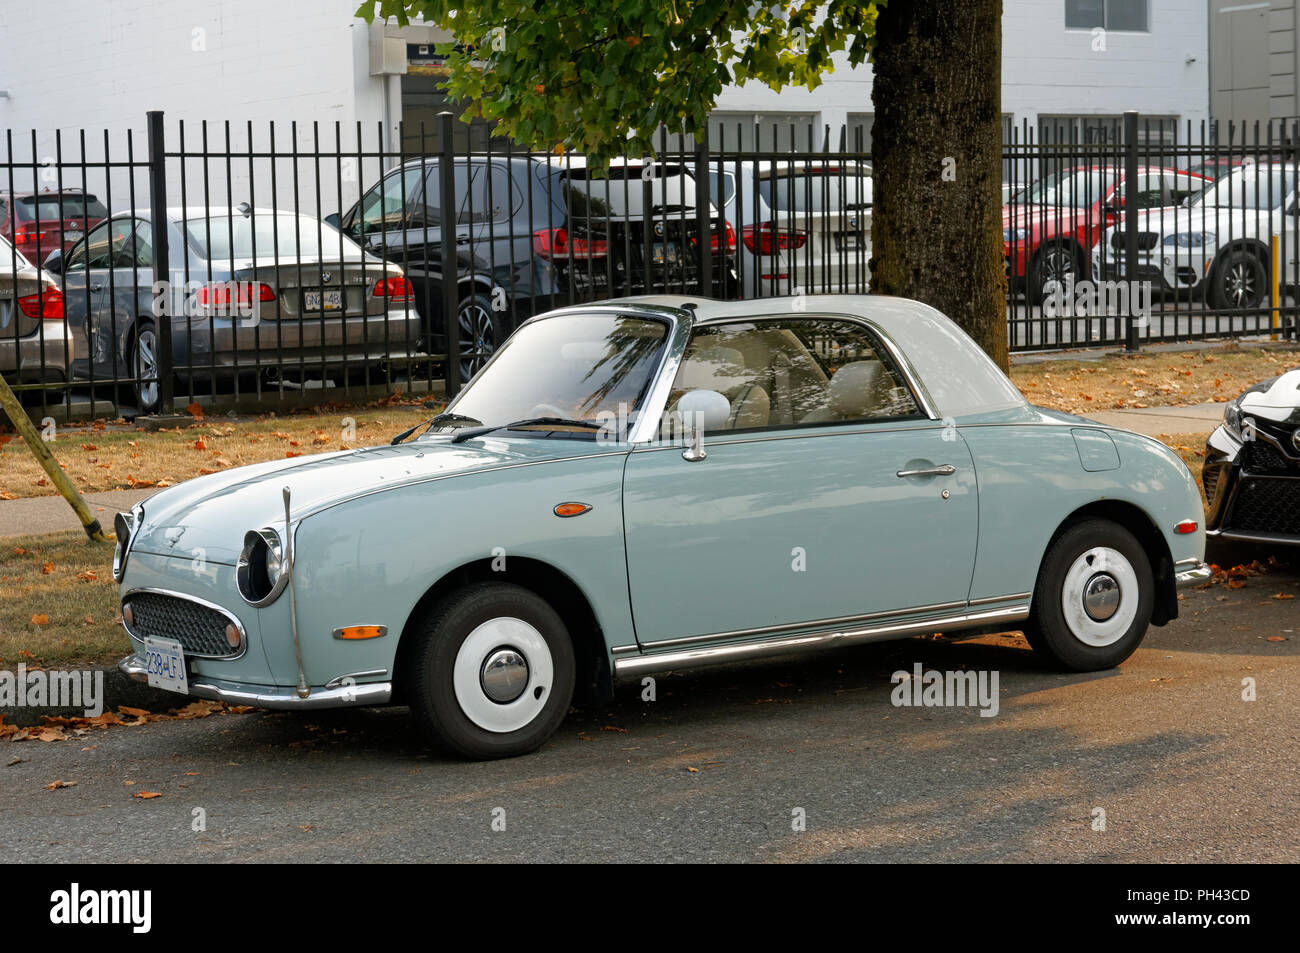 Nissan Figaro 2+2 retro-styled fixed profile convertible car parked on a street in Vancouver, BC, Canada - Stock Image